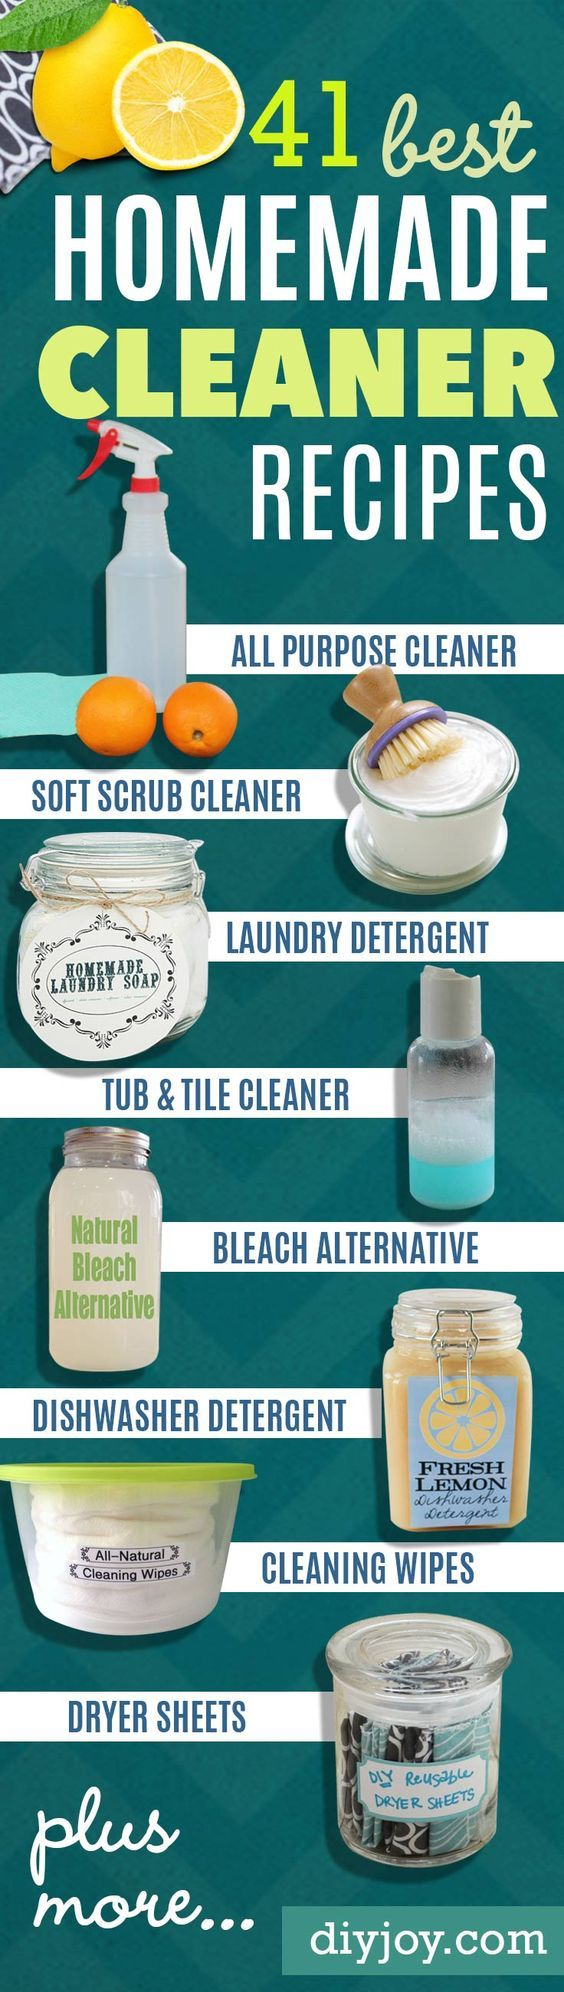 Best Natural Homemade DIY Cleaners and Recipes - All Purposed Home Care and Cleaning with Vinegar, Essential Oils and Other Natural Ingredients